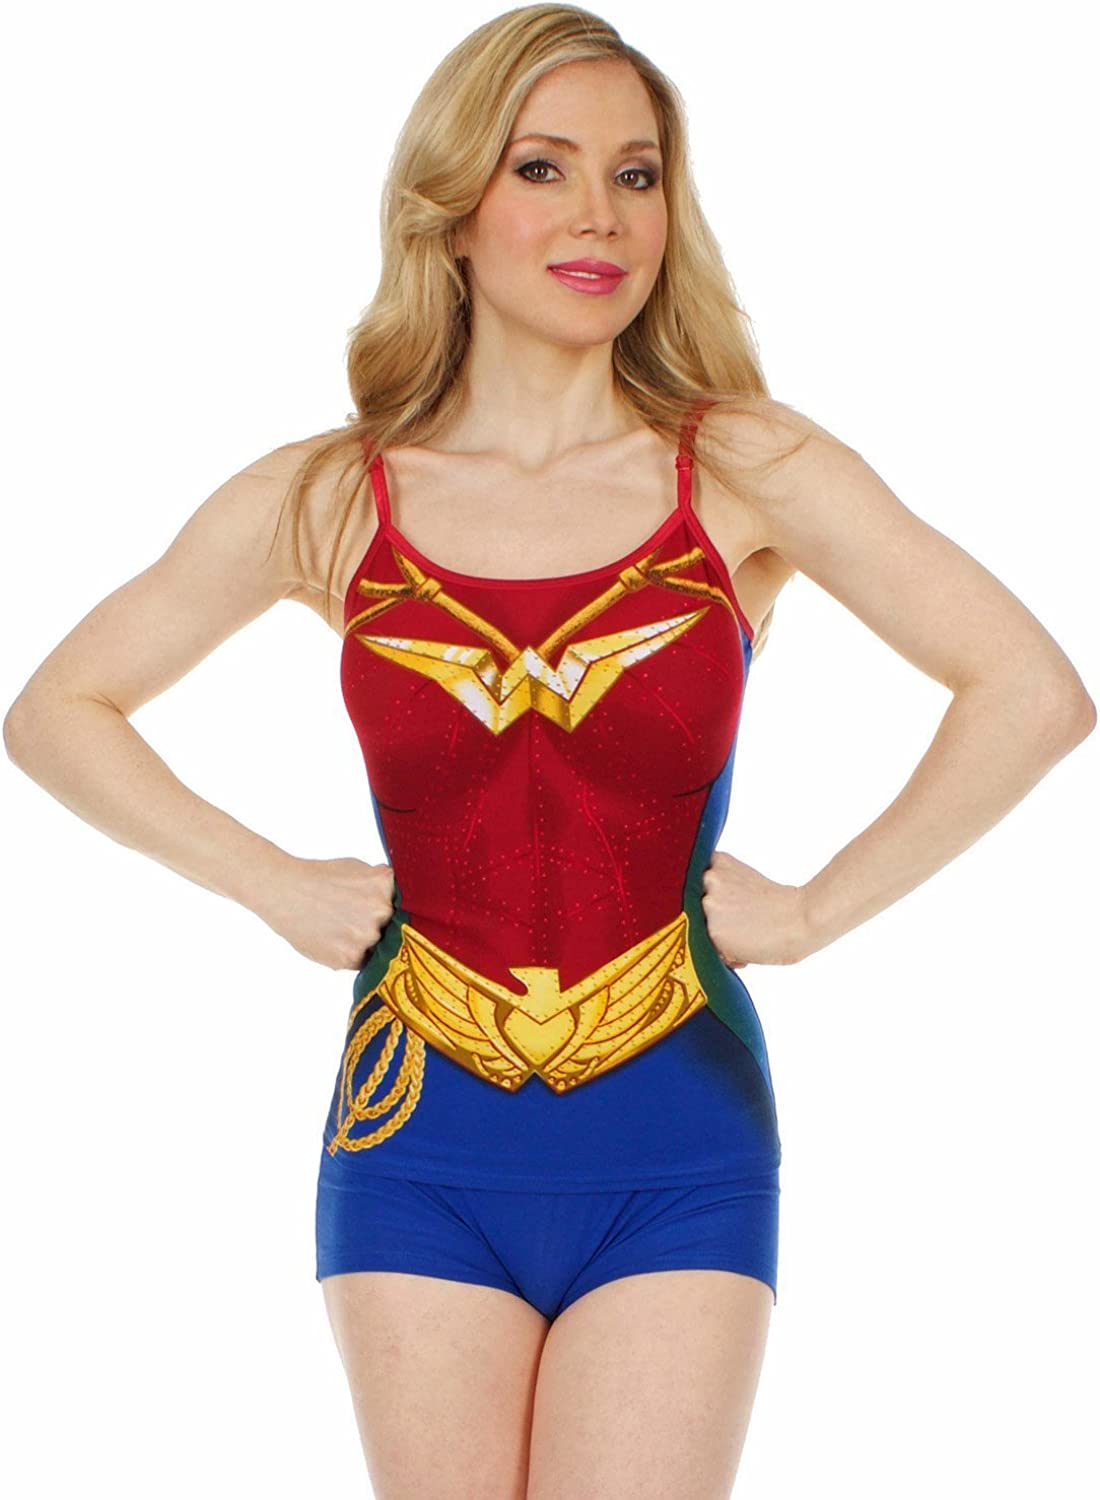 Super Girl Cami and Boy Short Set for Juniors